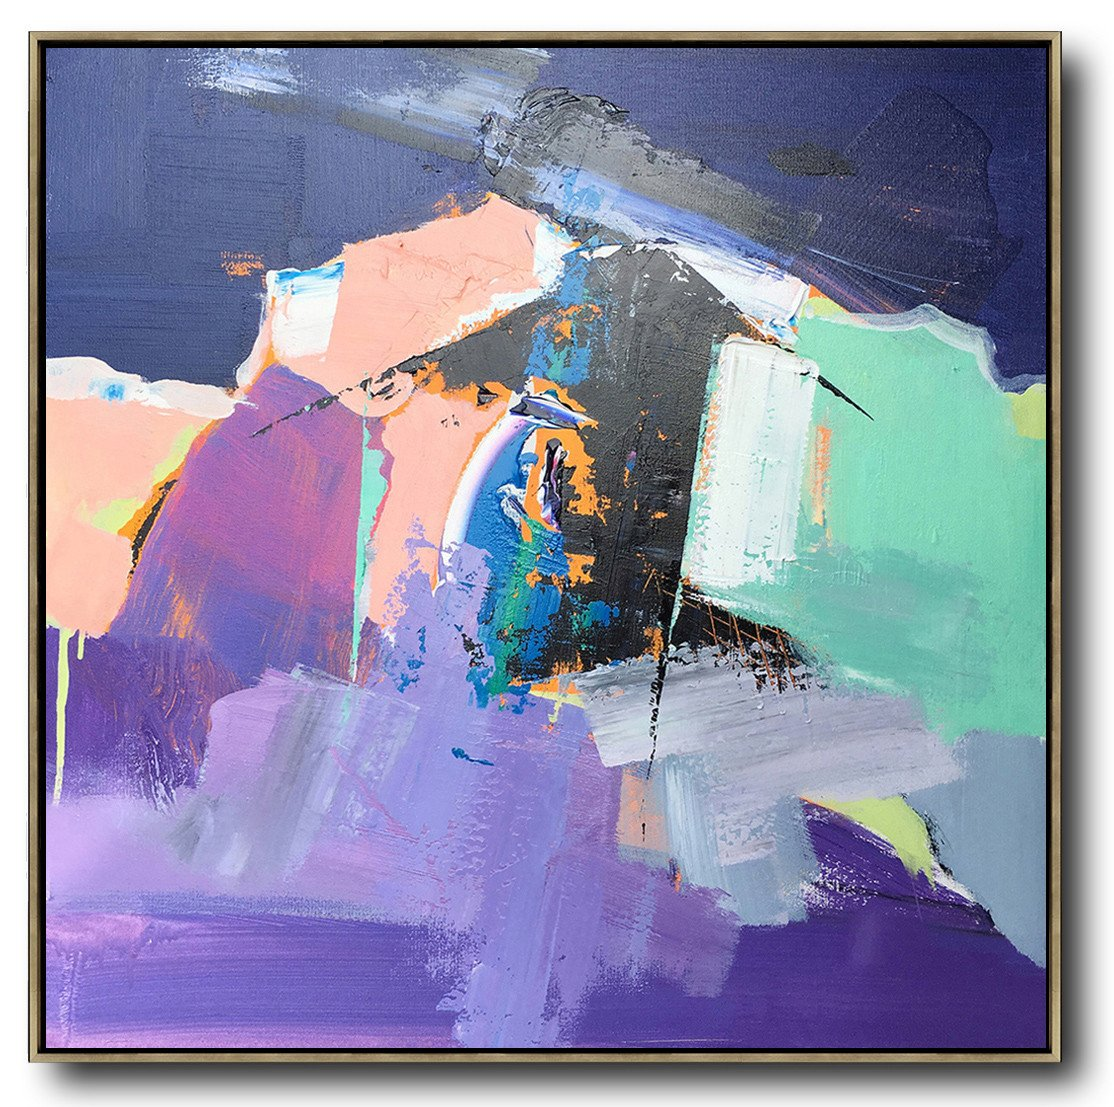 Oversized Canvas Art On Canvas,Oversized Palette Knife Painting Contemporary Art On Canvas,Oversized Canvas Art,Dark Blue,Nude,Purple,Light Green.etc